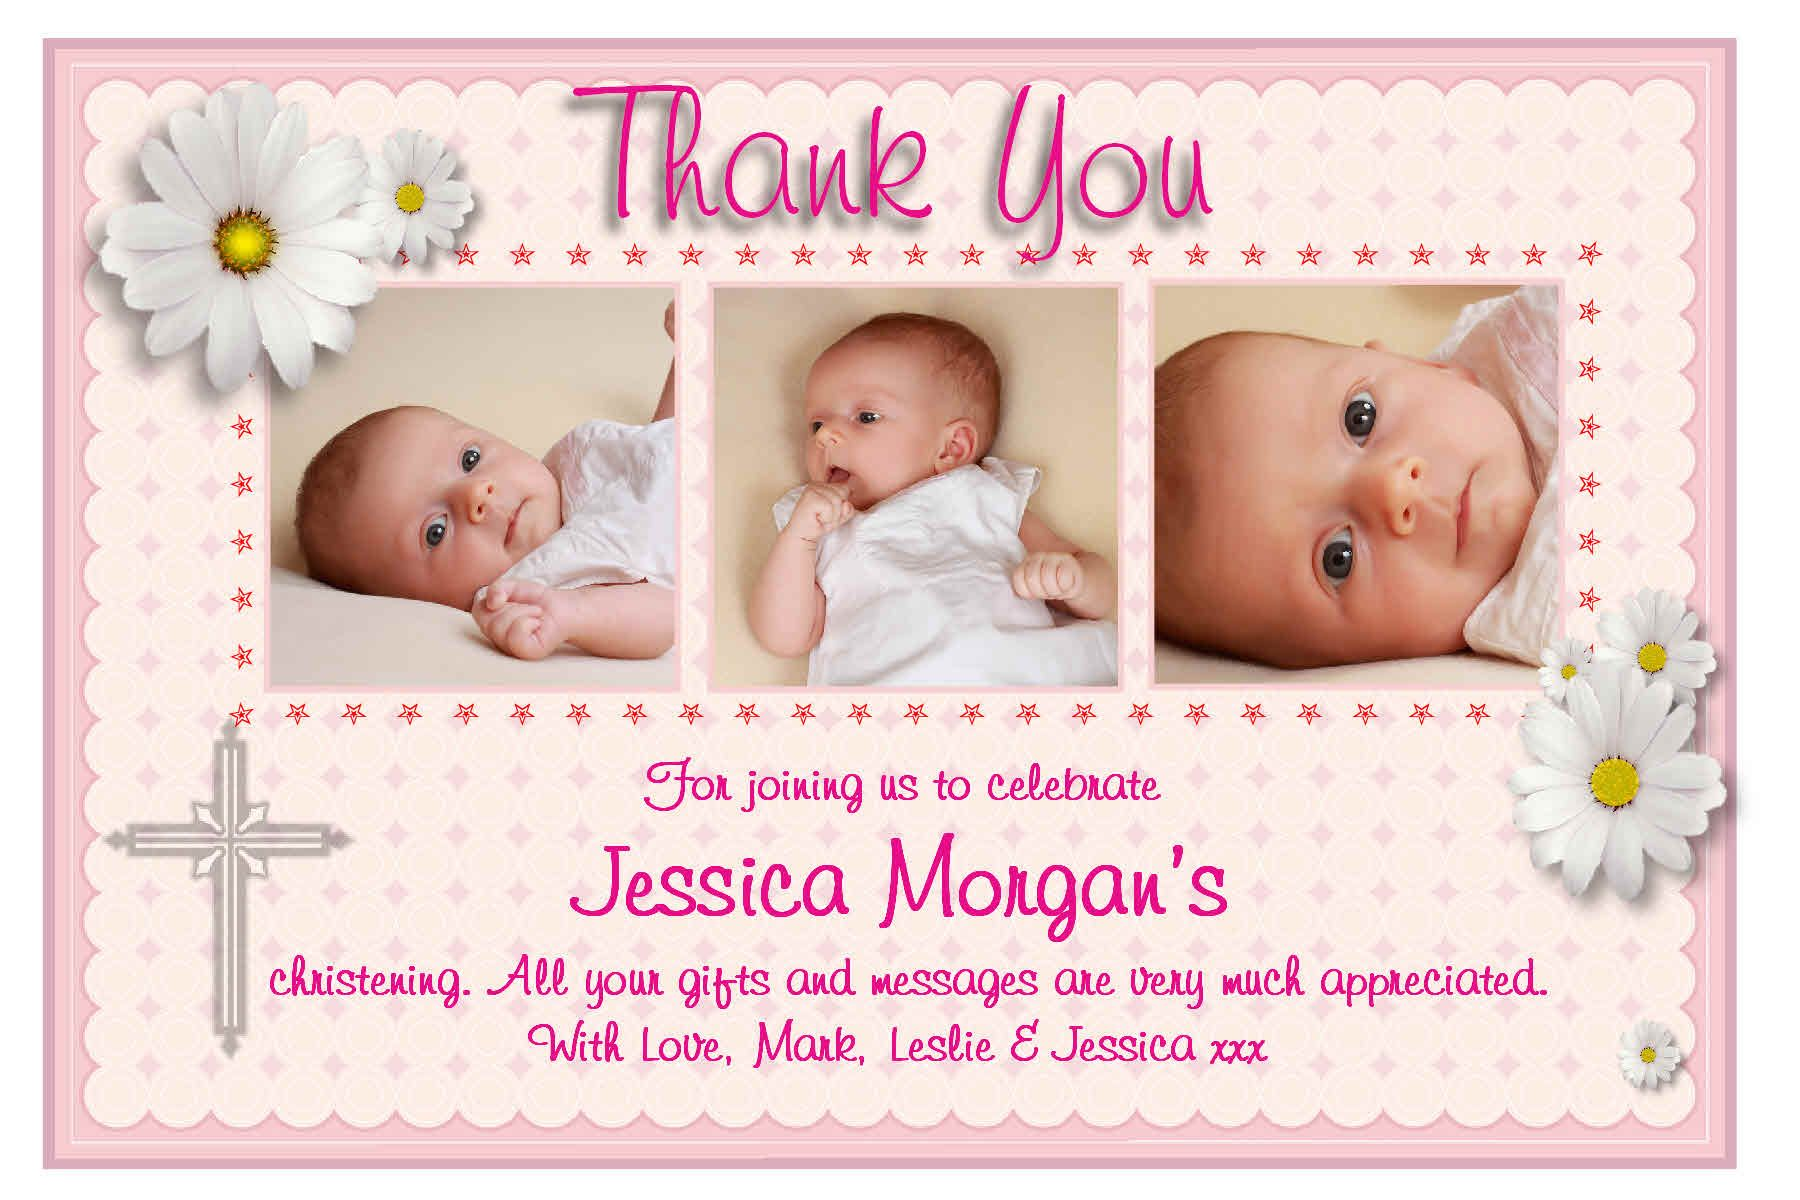 Dress Womens Clothing Thank You Card Personalised Custom Thank You Cards New Design Baptism Invitations Christening Invitations Girl Christening Invitations